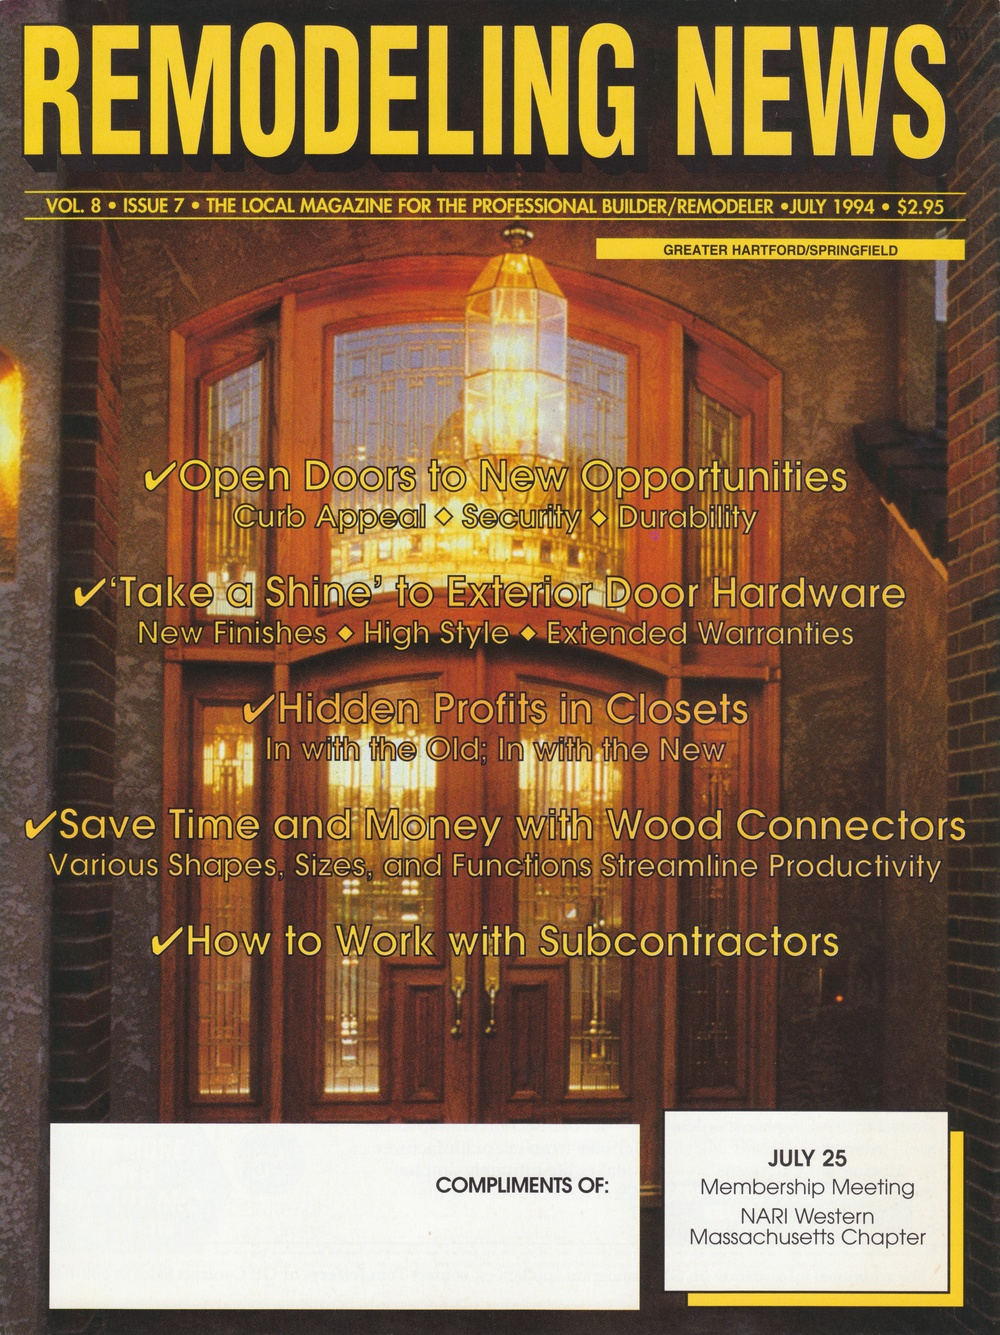 Remodeling_News1994a.jpg